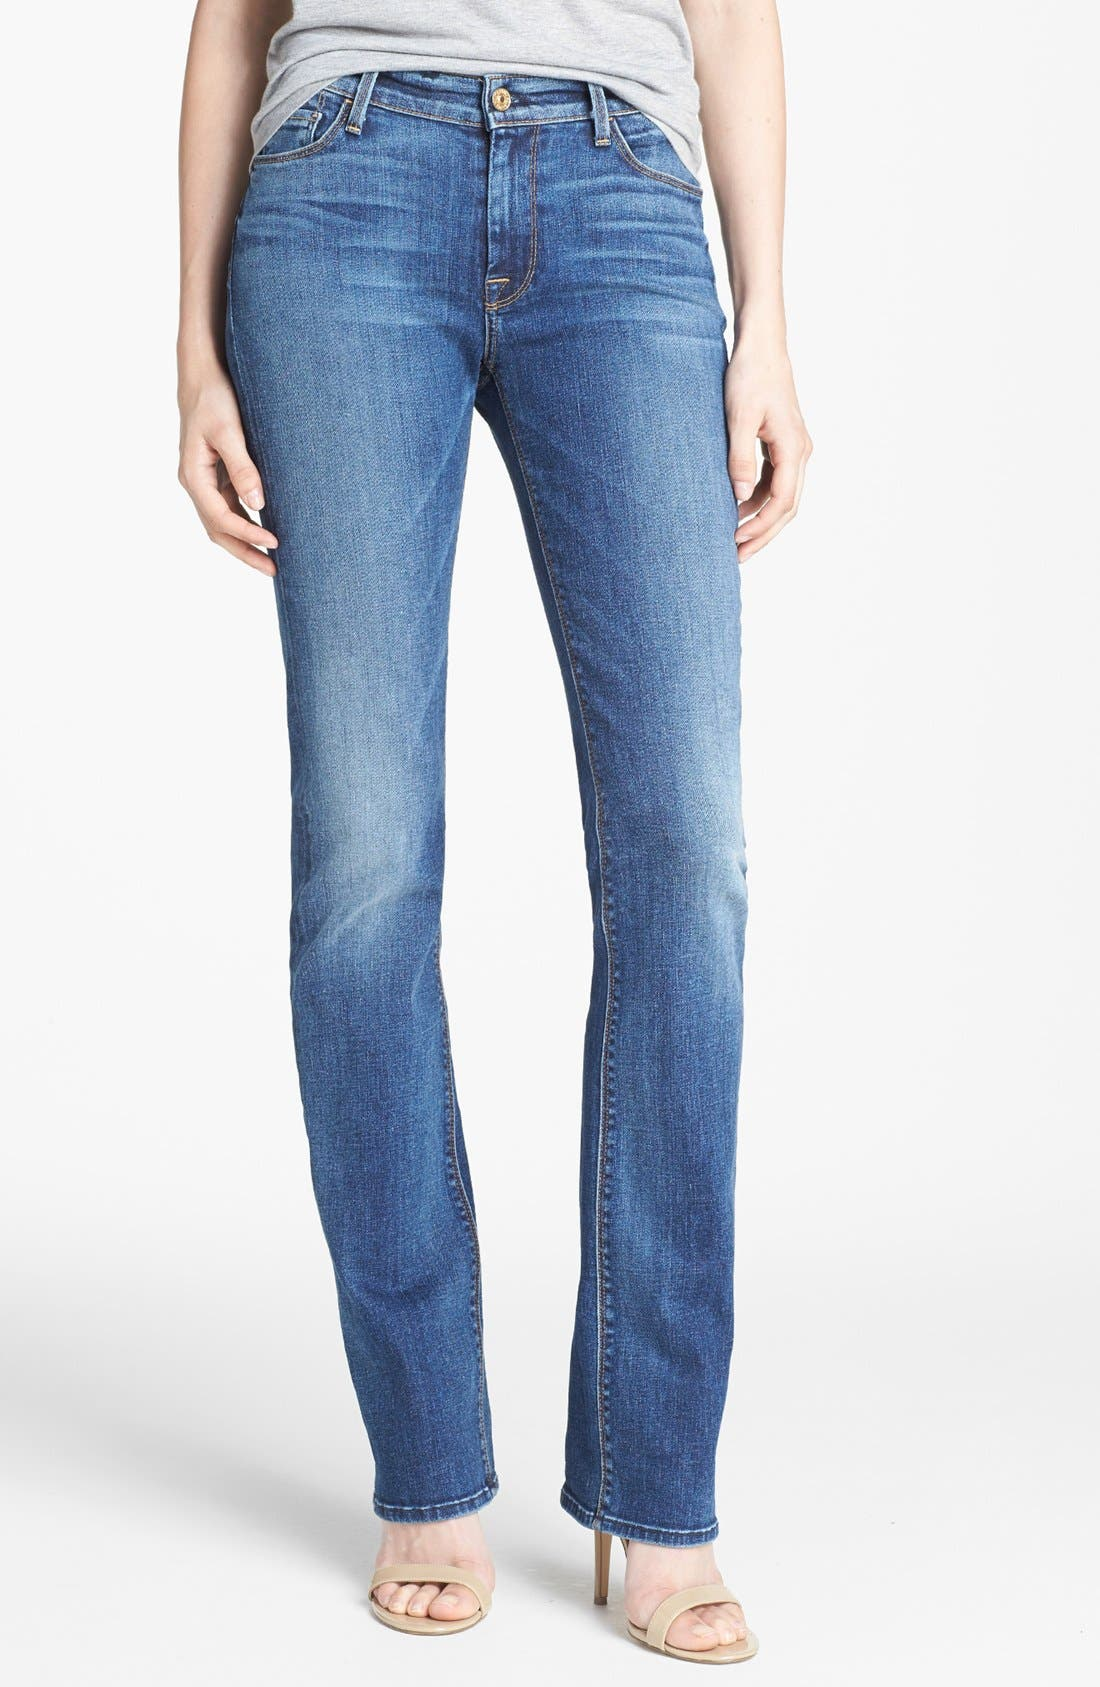 Alternate Image 1 Selected - 7 For All Mankind® 'The Skinny' Bootcut Jeans (Rue de Lille)